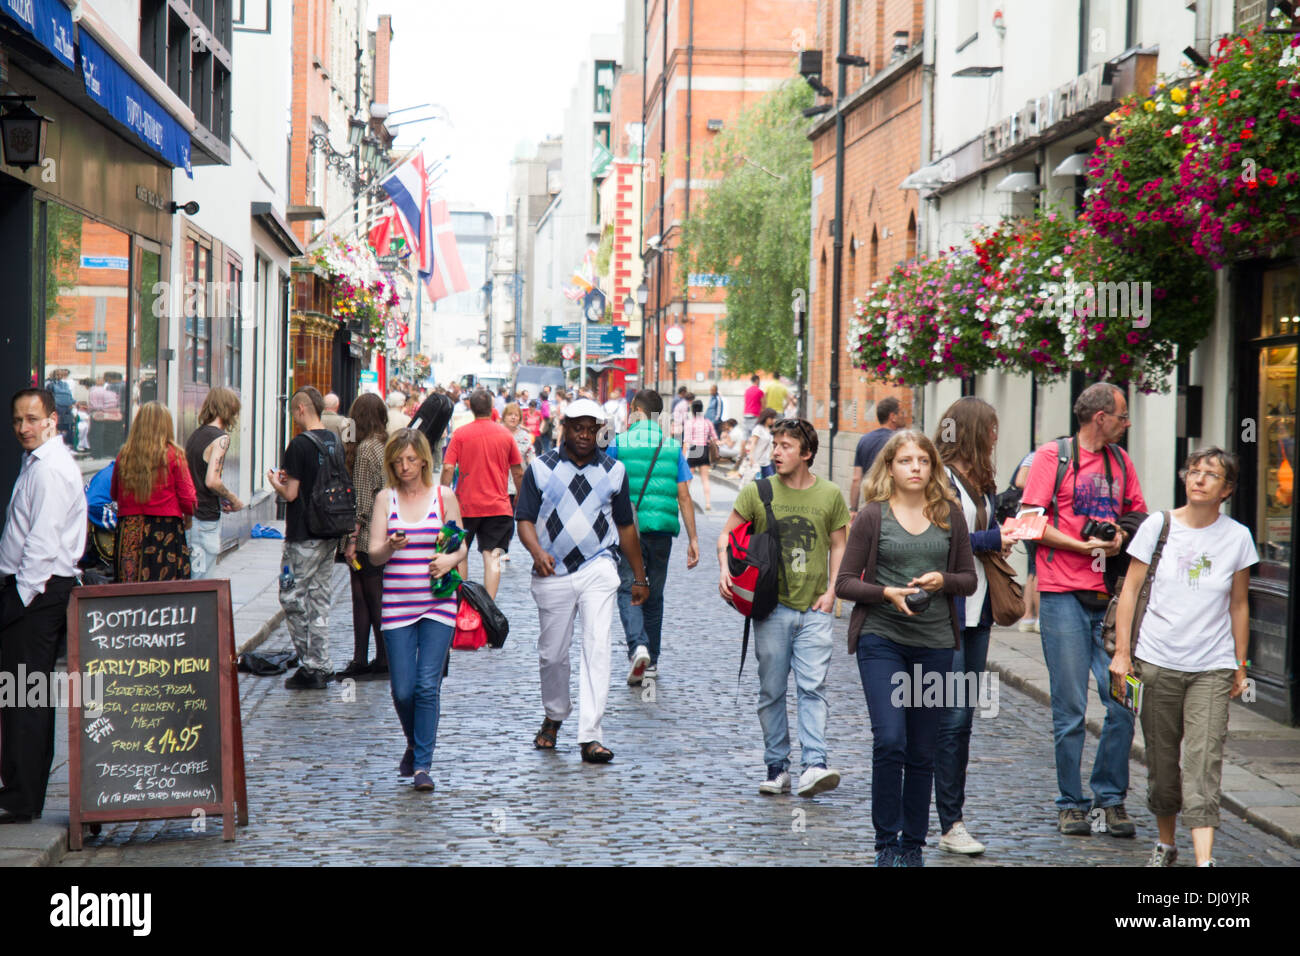 Busy street in Temple Bar district Dublin Ireland - Stock Image